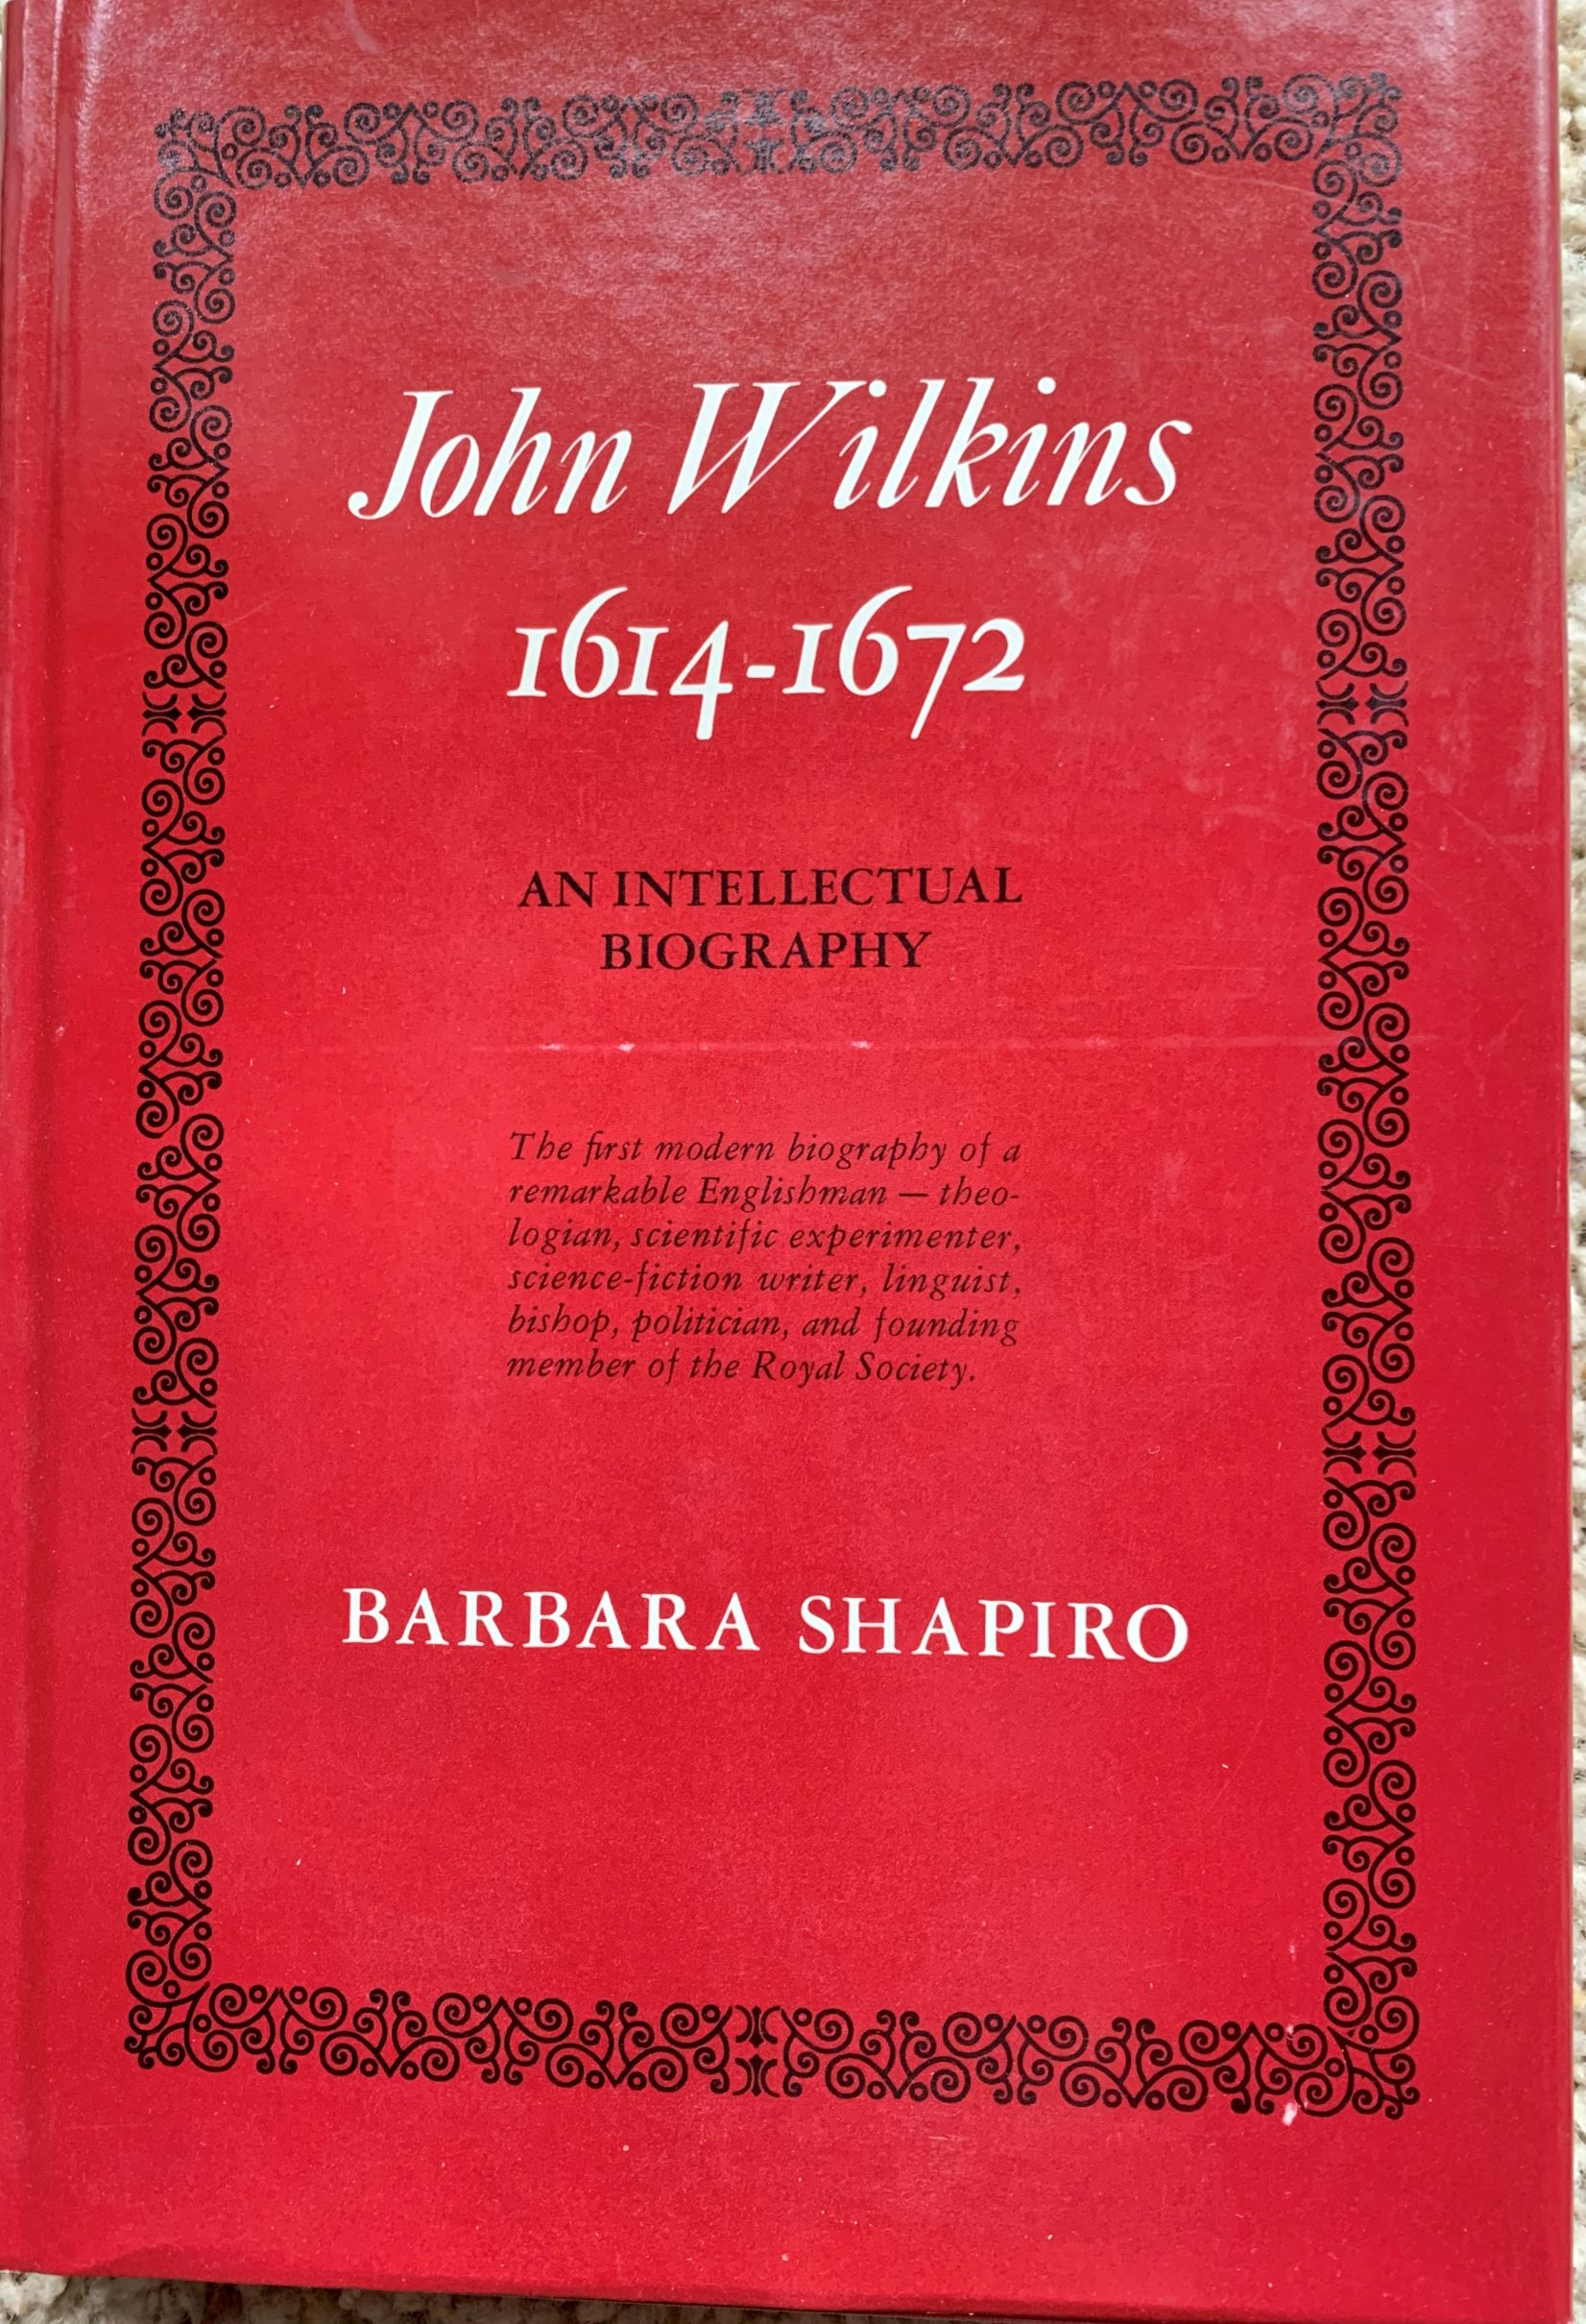 Image for John Wilkins, 1614-1672, An Intellectual Biography.